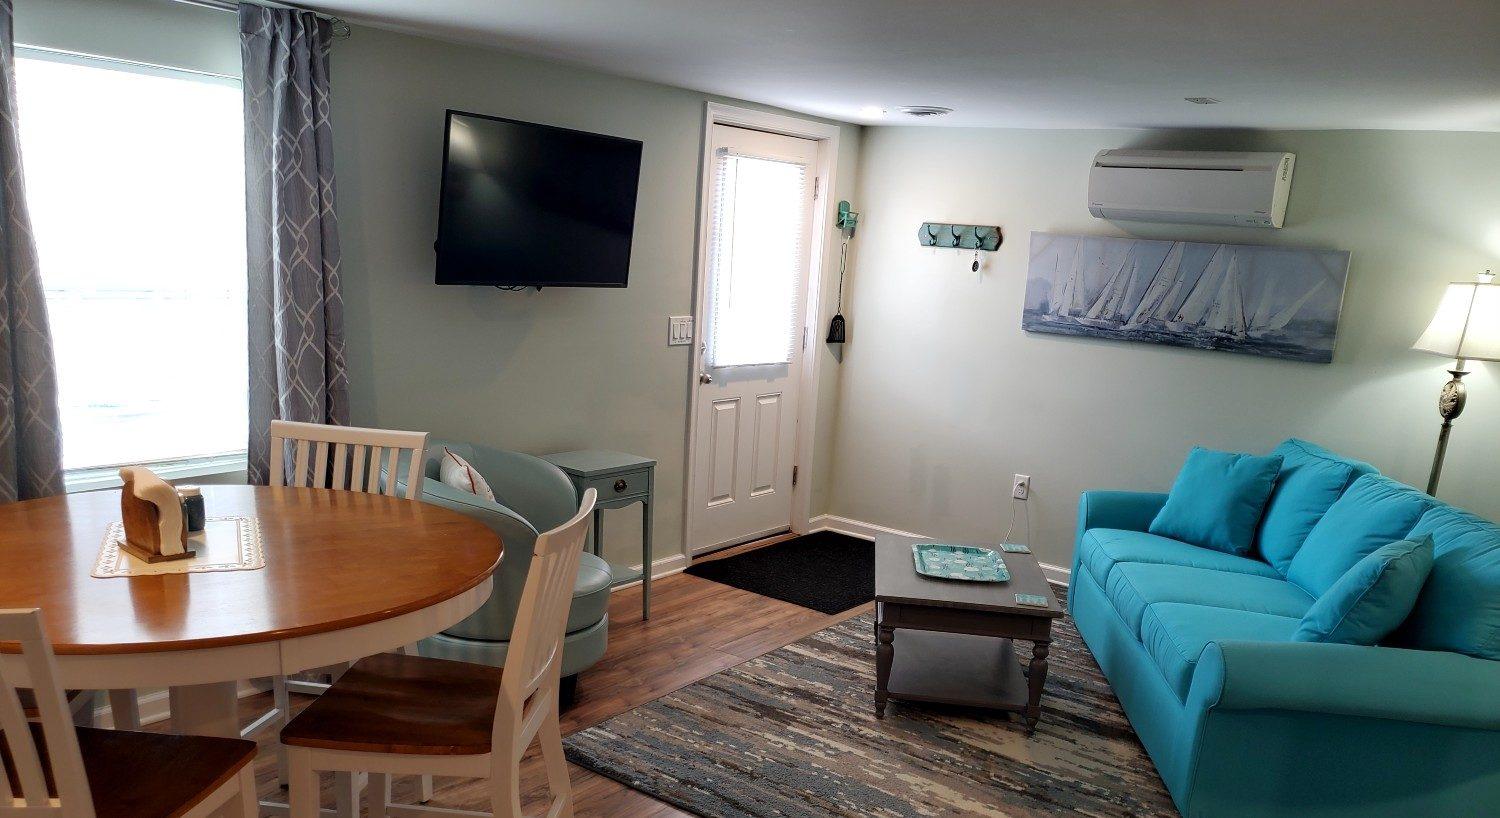 Blue couch with wood kitchen table